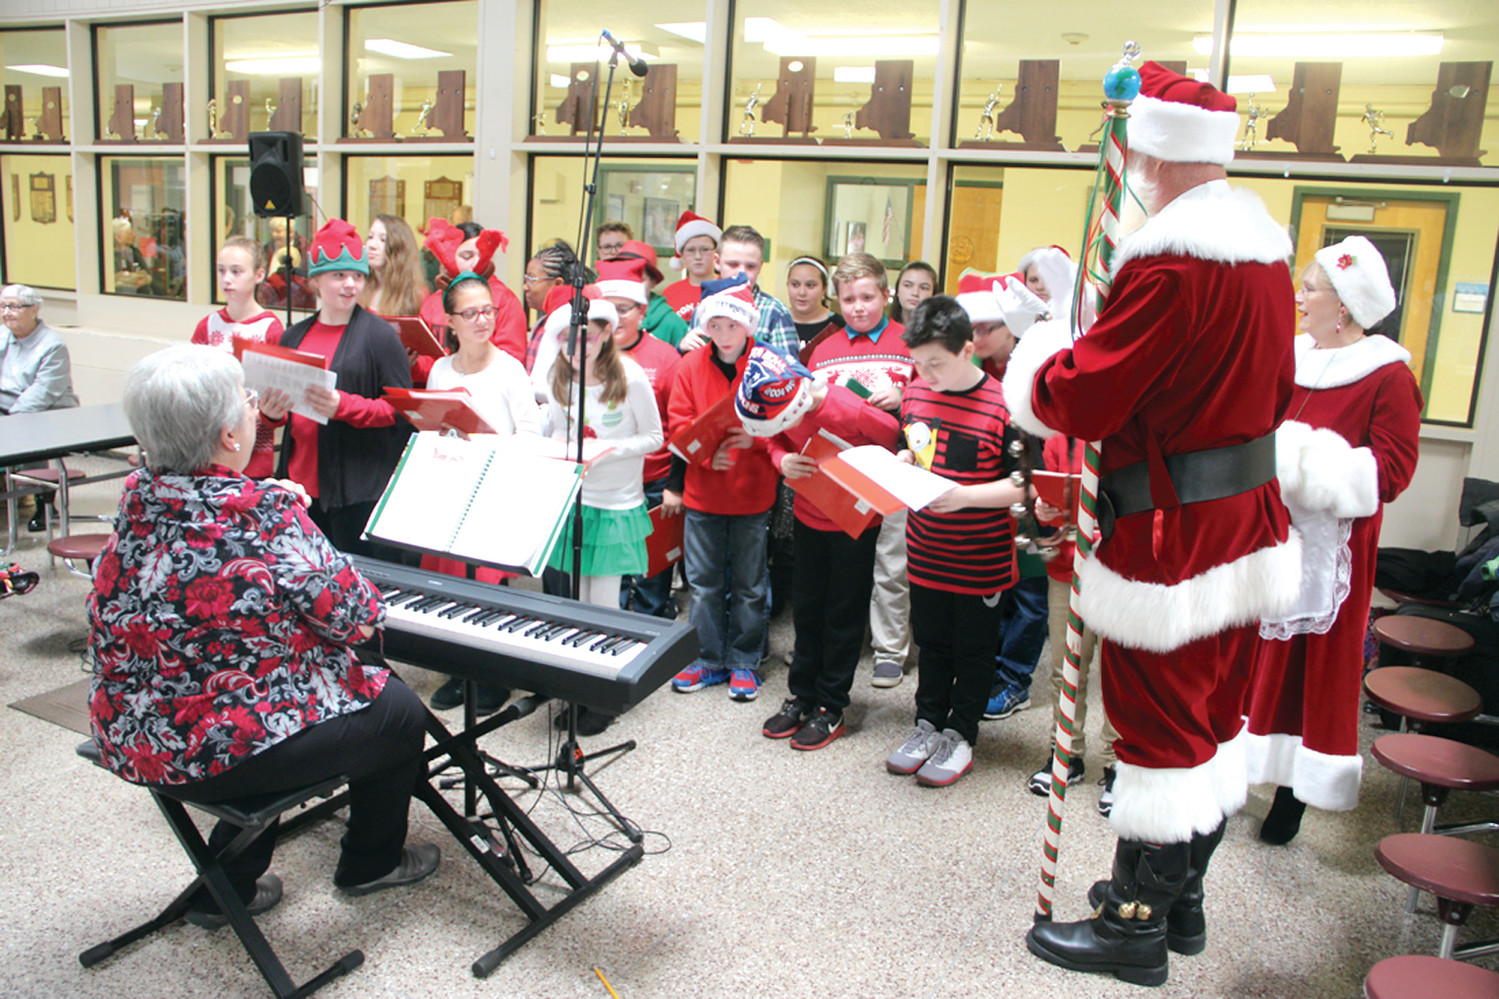 HE JOINED THE CHORUS: Santa and Mrs. Claus sang along with the St. Kevin School Chorus. Accompanying the chorus was Bev Hopkins, who made sure to play some Christmas favorites – whoever said it's too early to ride in a one-horse sleigh?